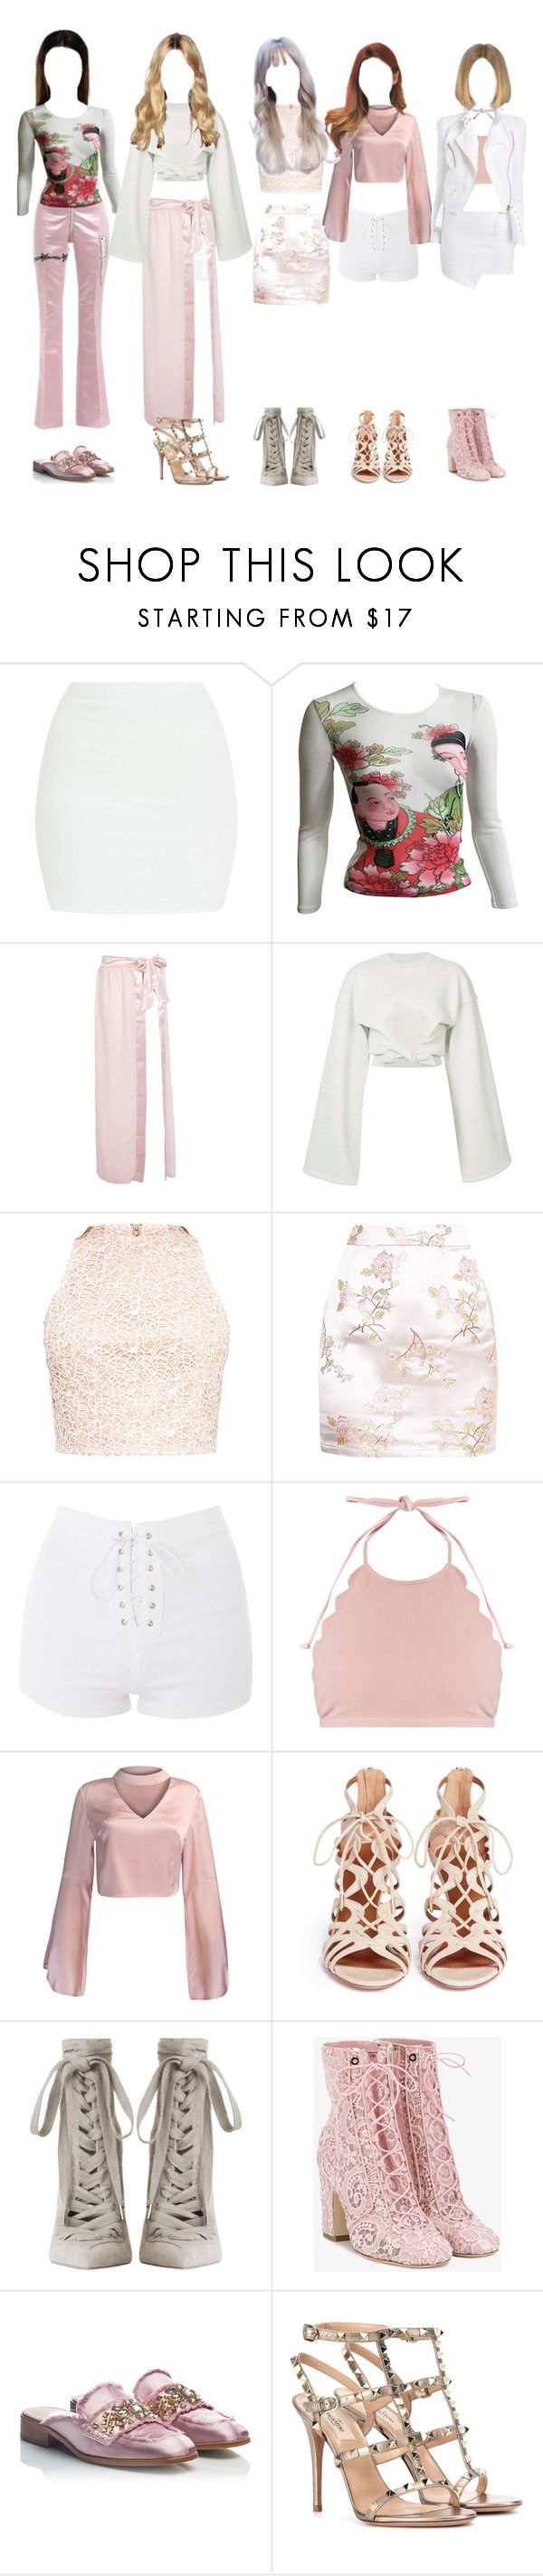 """first tour no.2"" by taekook-junghyung ❤ liked on Polyvore featuring Dilara Findikoglu, Kenzo, Boohoo, Y/Project, Topshop, Marysia Swim, WithChic, Alexandre Vauthier, Aquazzura and Zimmermann"